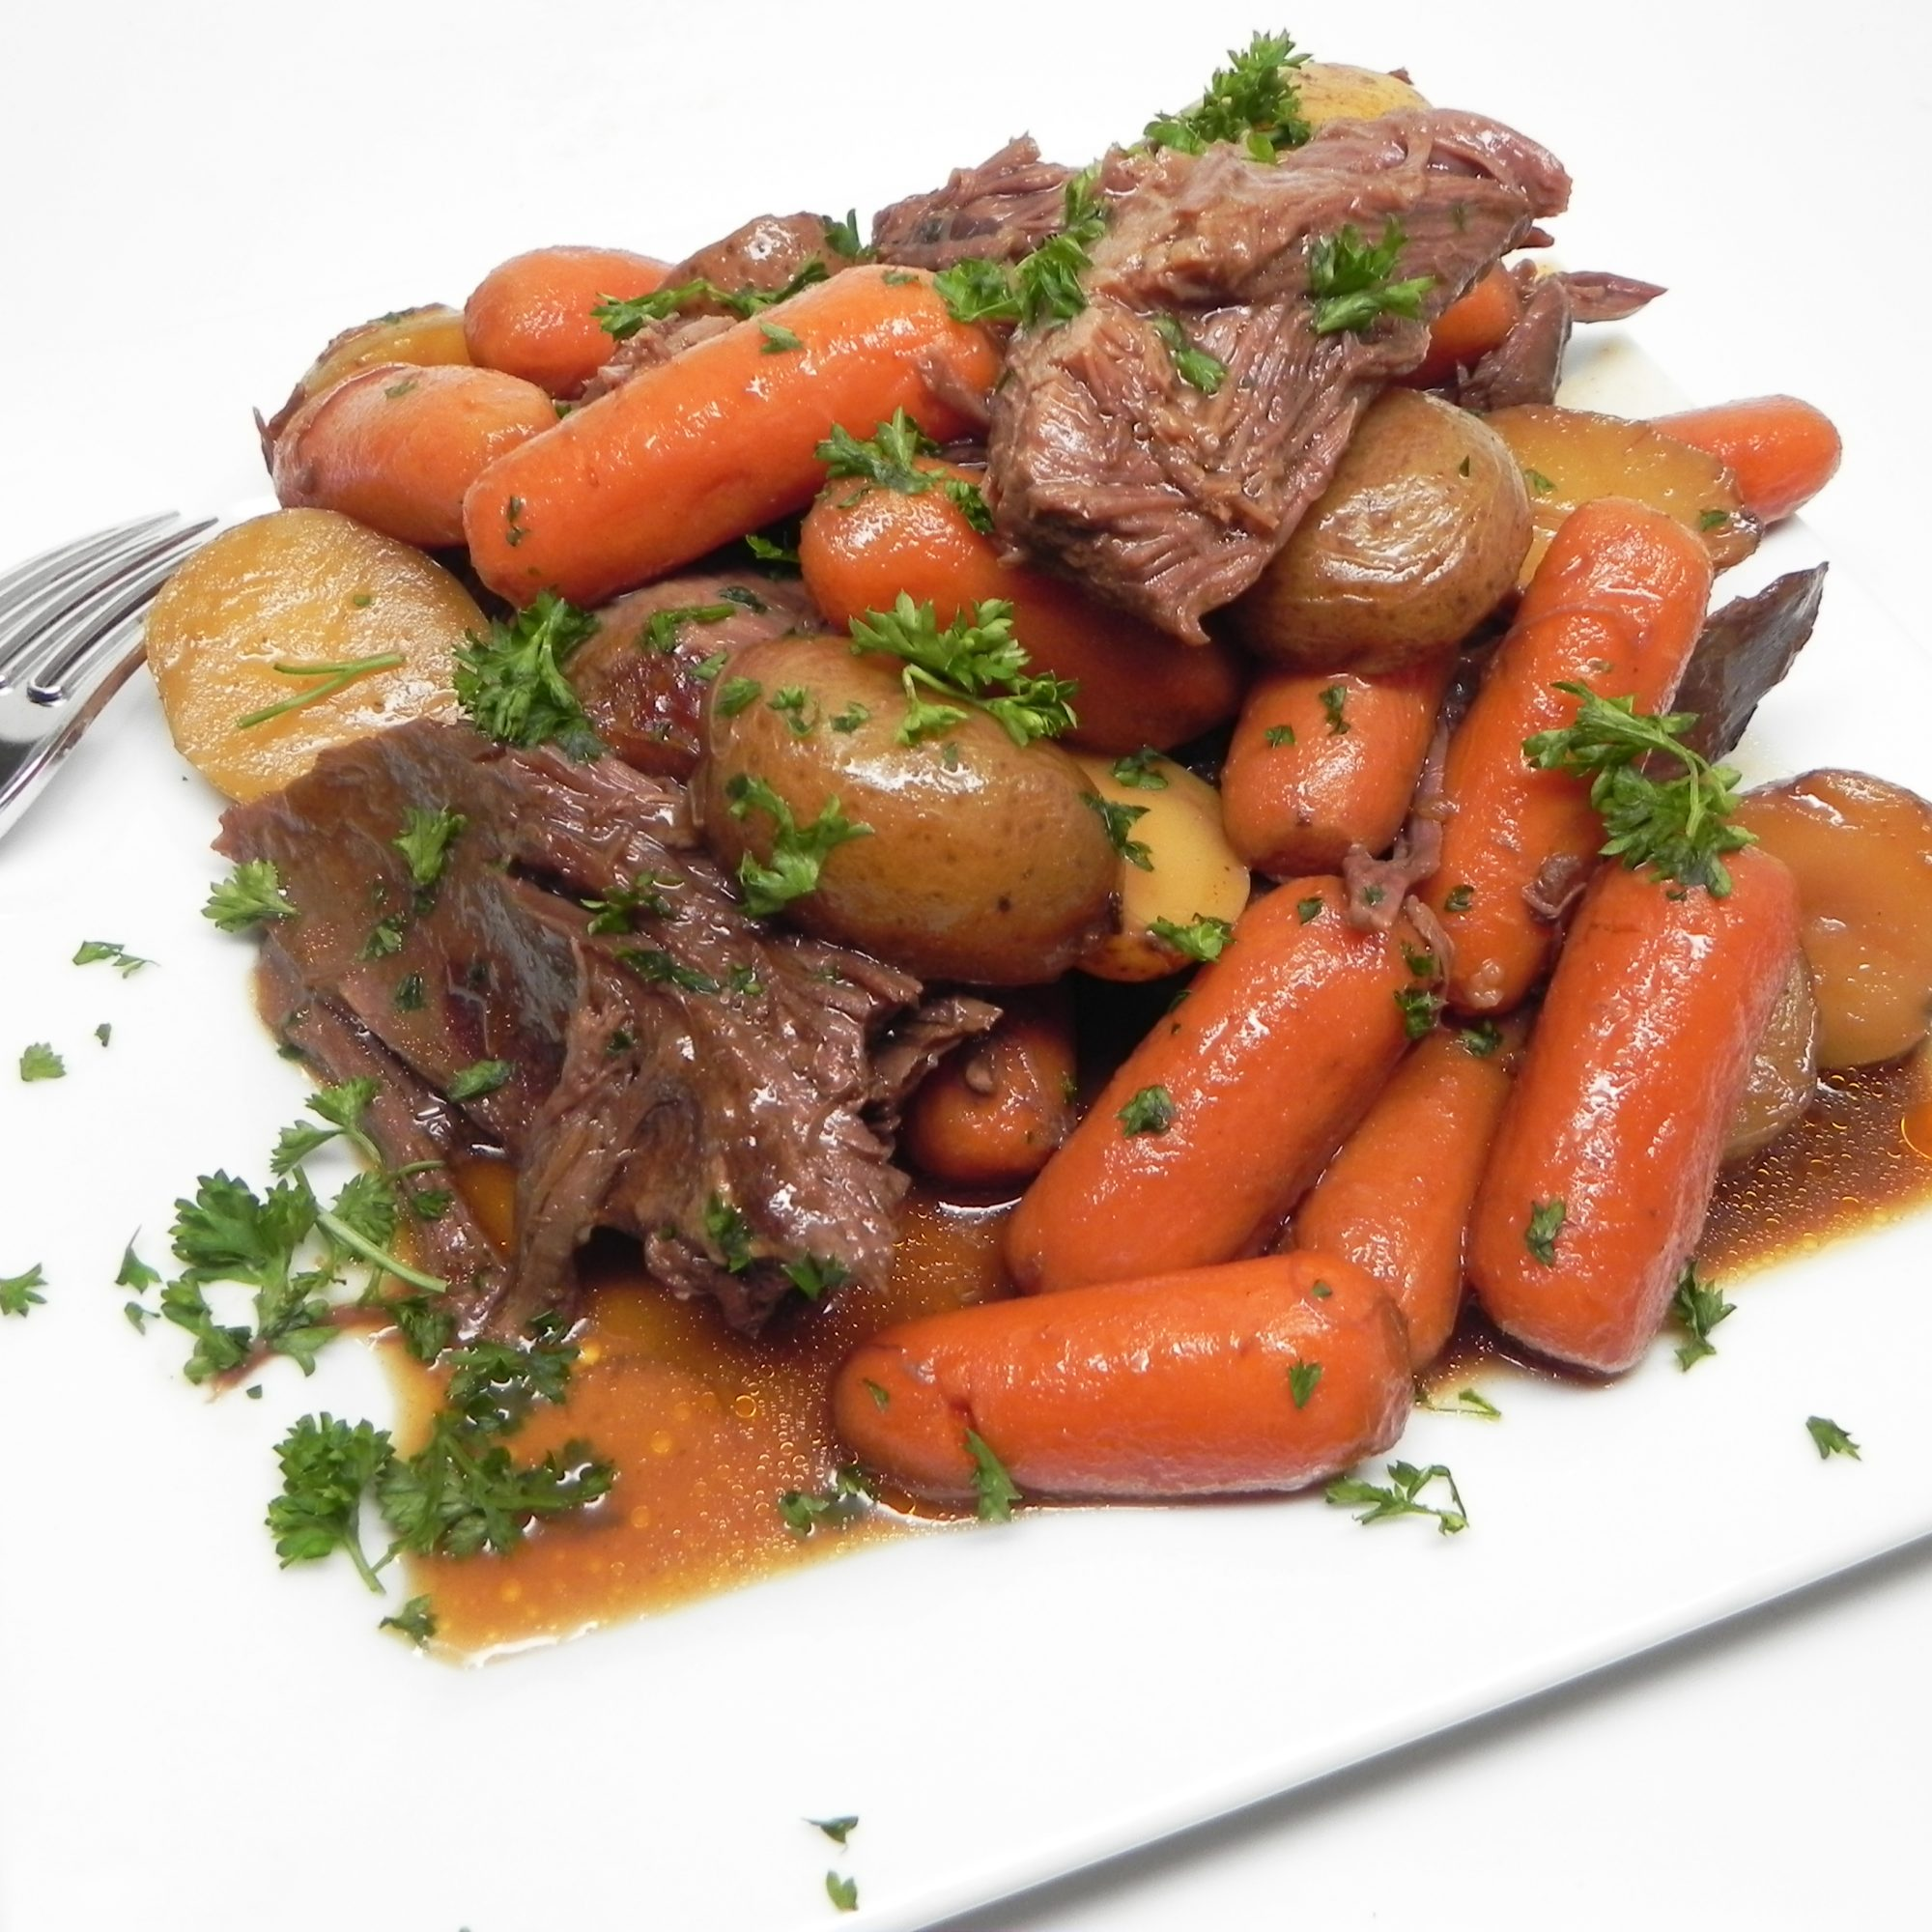 Instant Pot Venison Pot Roast with carrots and potatoes and meat on a white plate